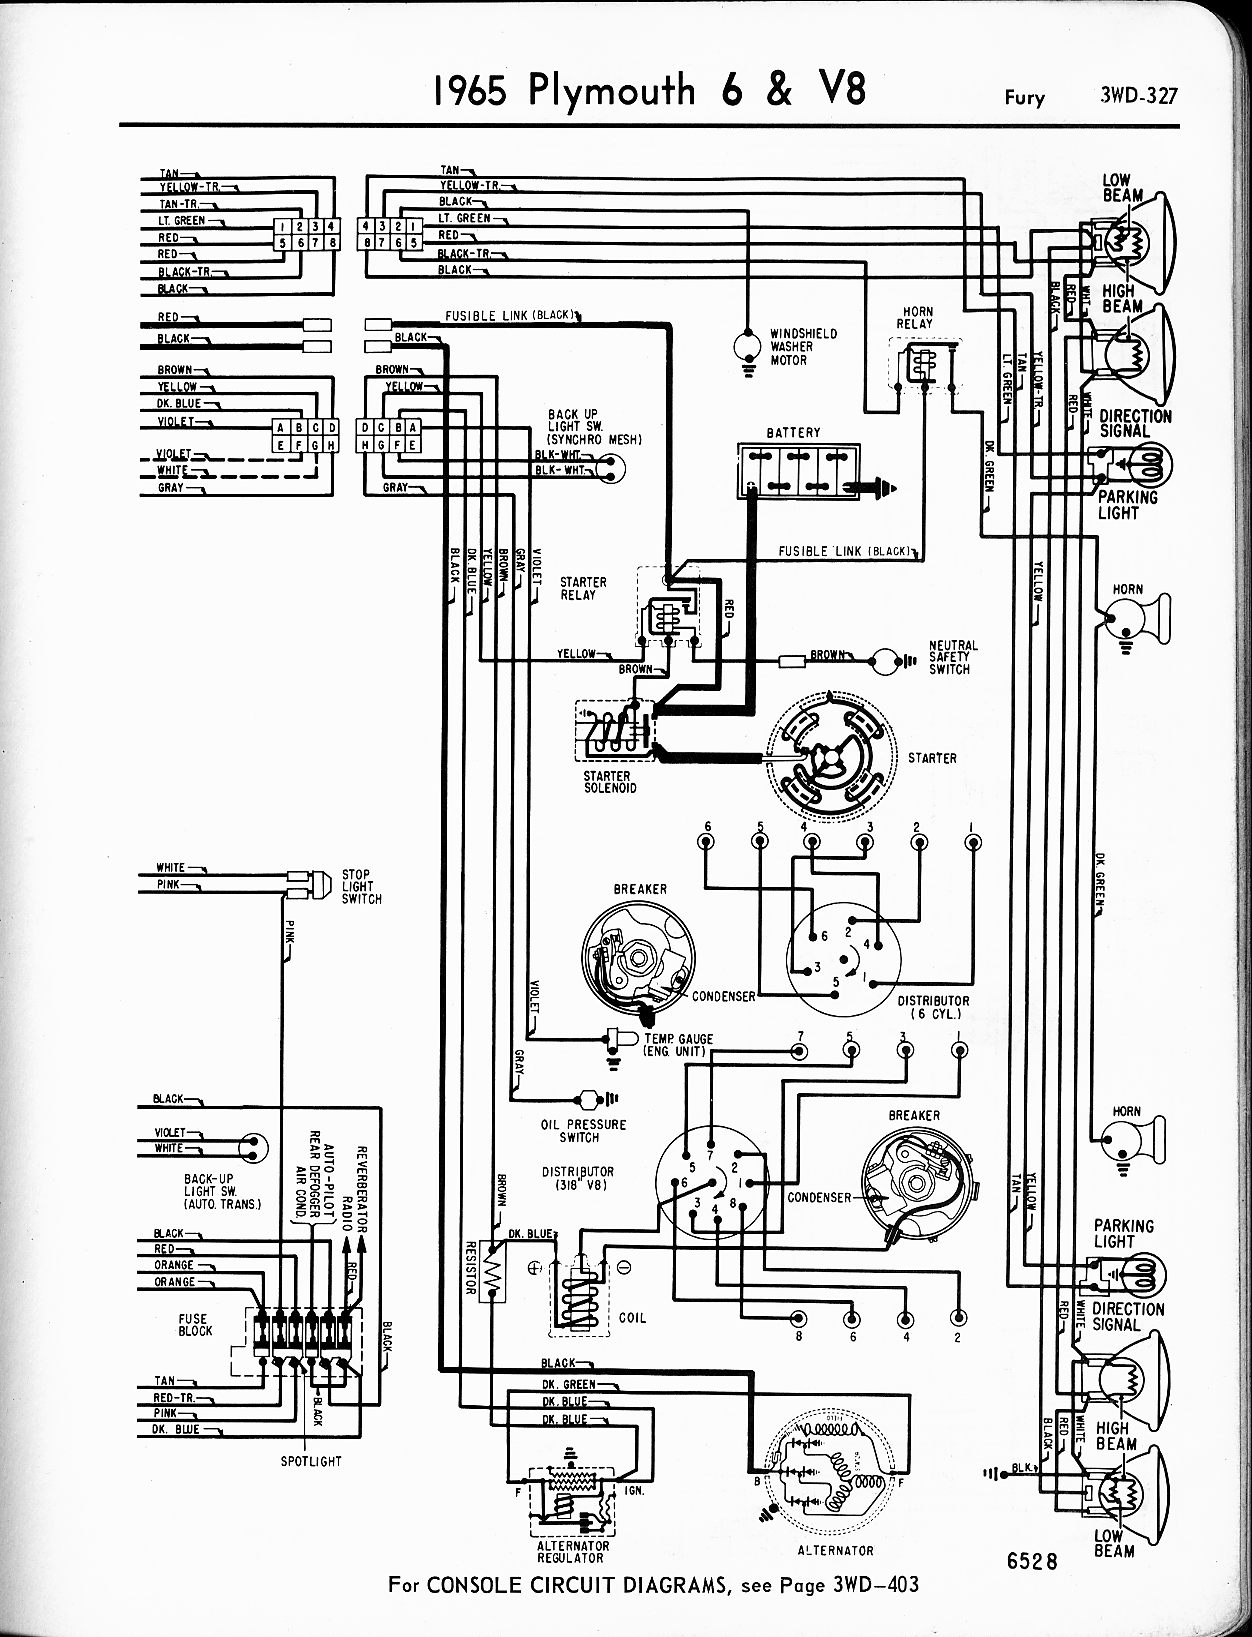 fax wiring diagram wiring library RV Power Schematic 68 satellite wiring diagram wiring diagram schematics 4 way switch wiring diagram 68 valiant wiring